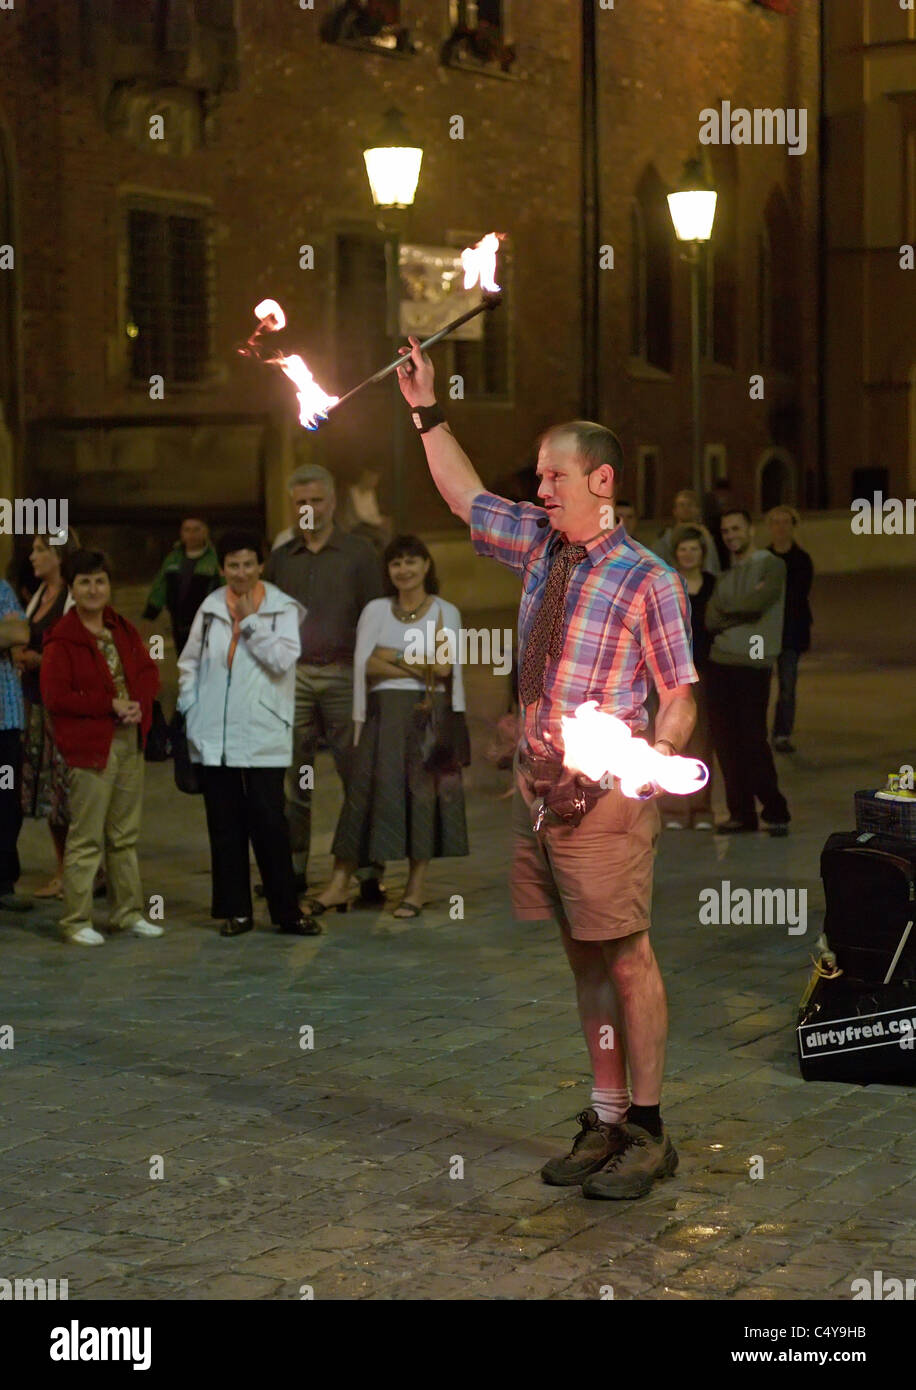 People watching a juggler's fire performance on the market square, Wroclaw, Poland - Stock Image